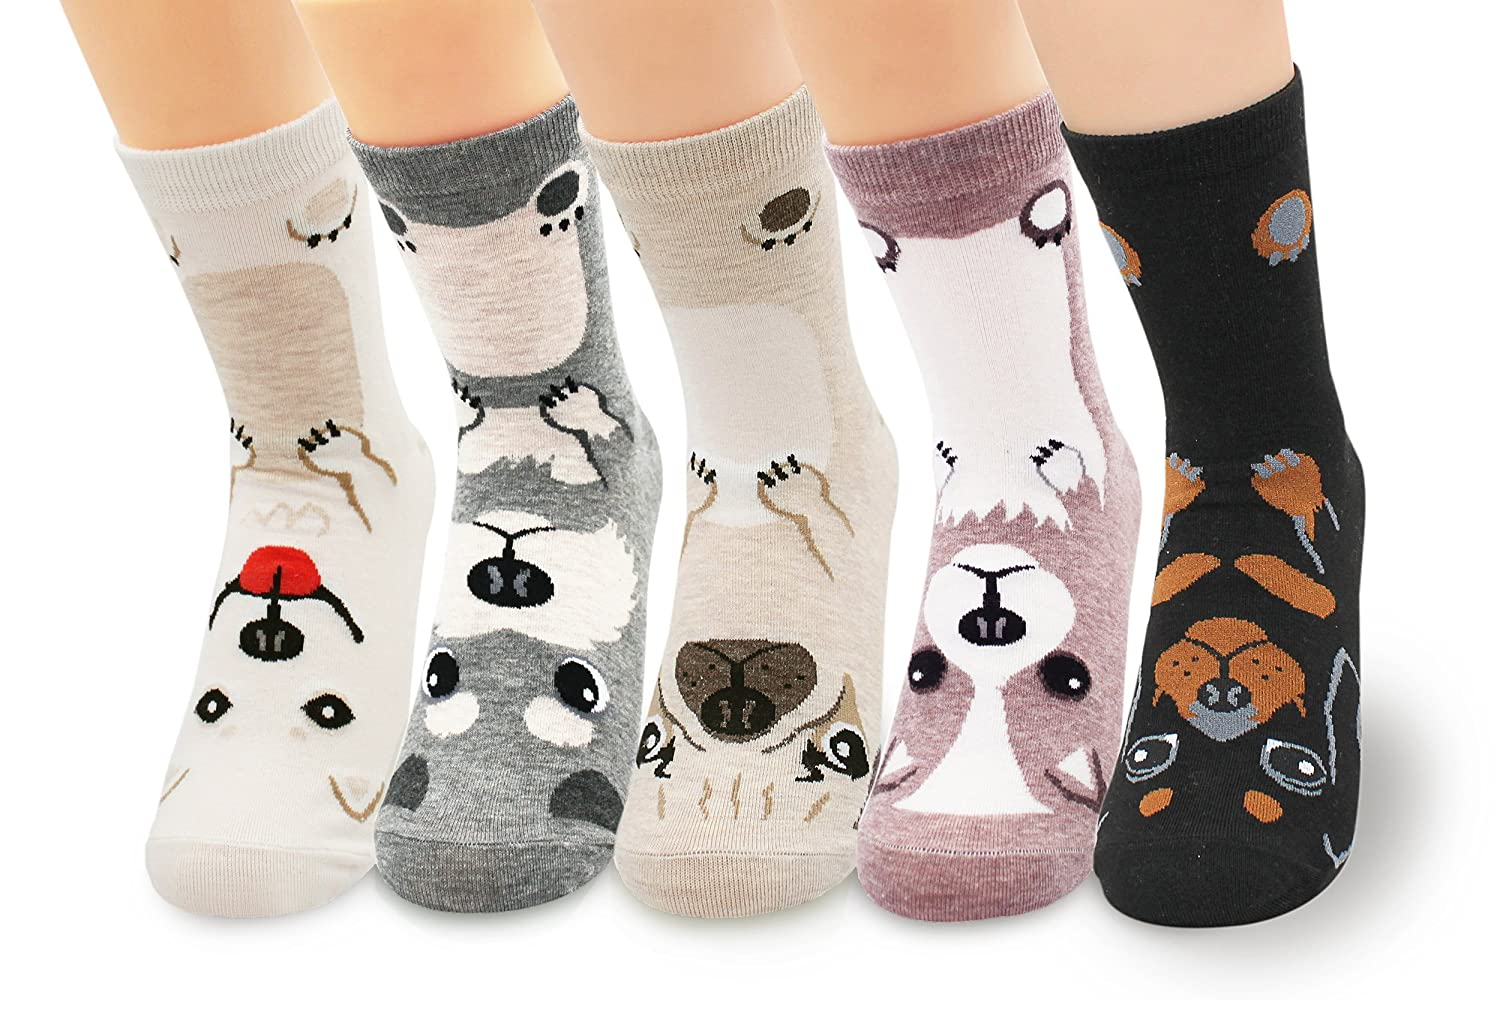 V28 Women's Cute Socks with Owls Pandas Tigers Foxes Various Pattern Mixed Colors 4 Seasons)